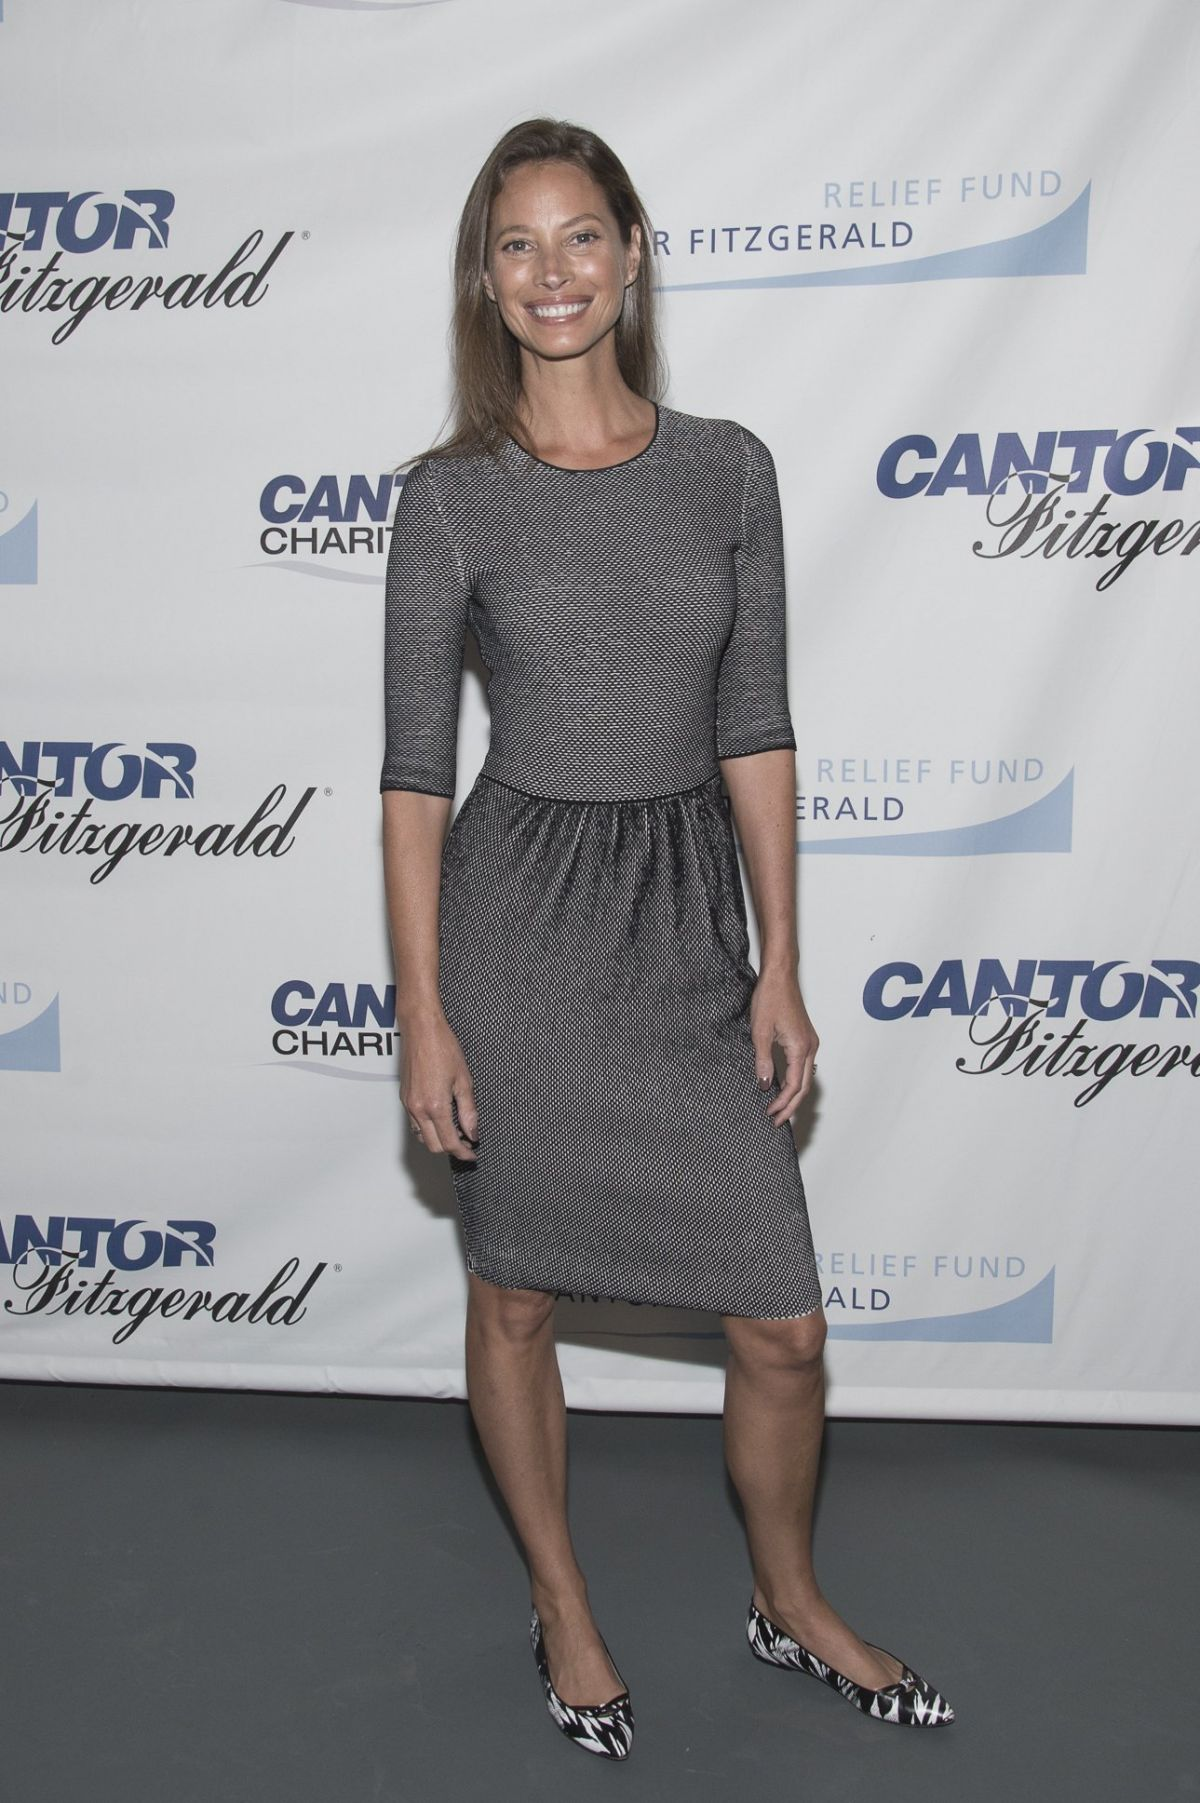 CHRISTY TURLINGTON at Charity Day Hosted by Cantor Fitzgerald and BGC in New York